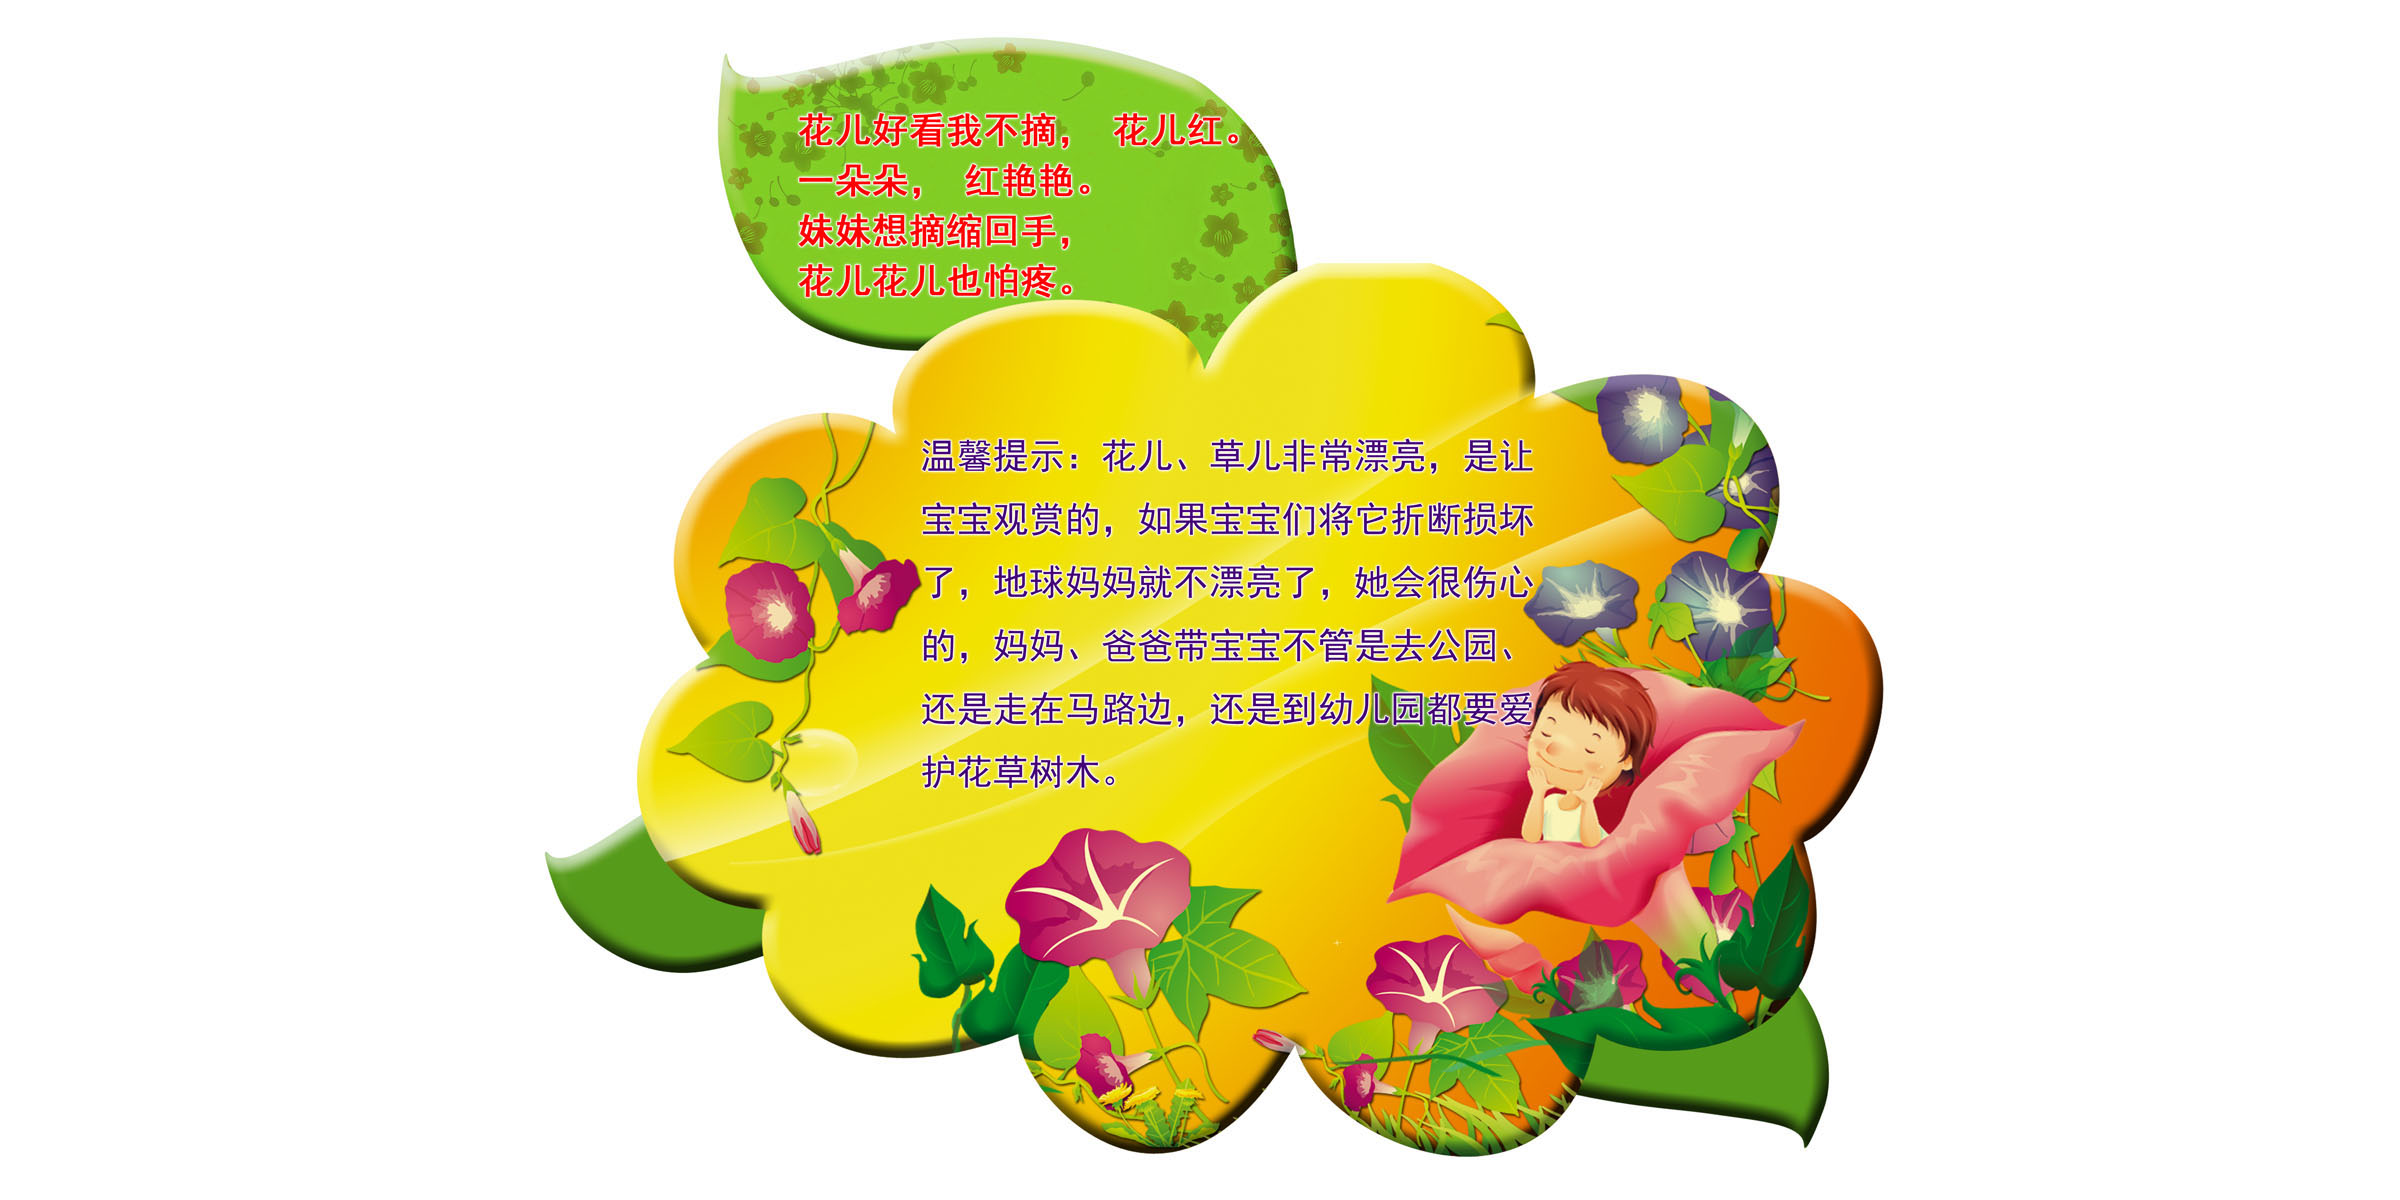 Get Quotations Poster 626 Posters Material Panels 475 Kindergarten Flower Nursery Rhyme Warm Mention Shown